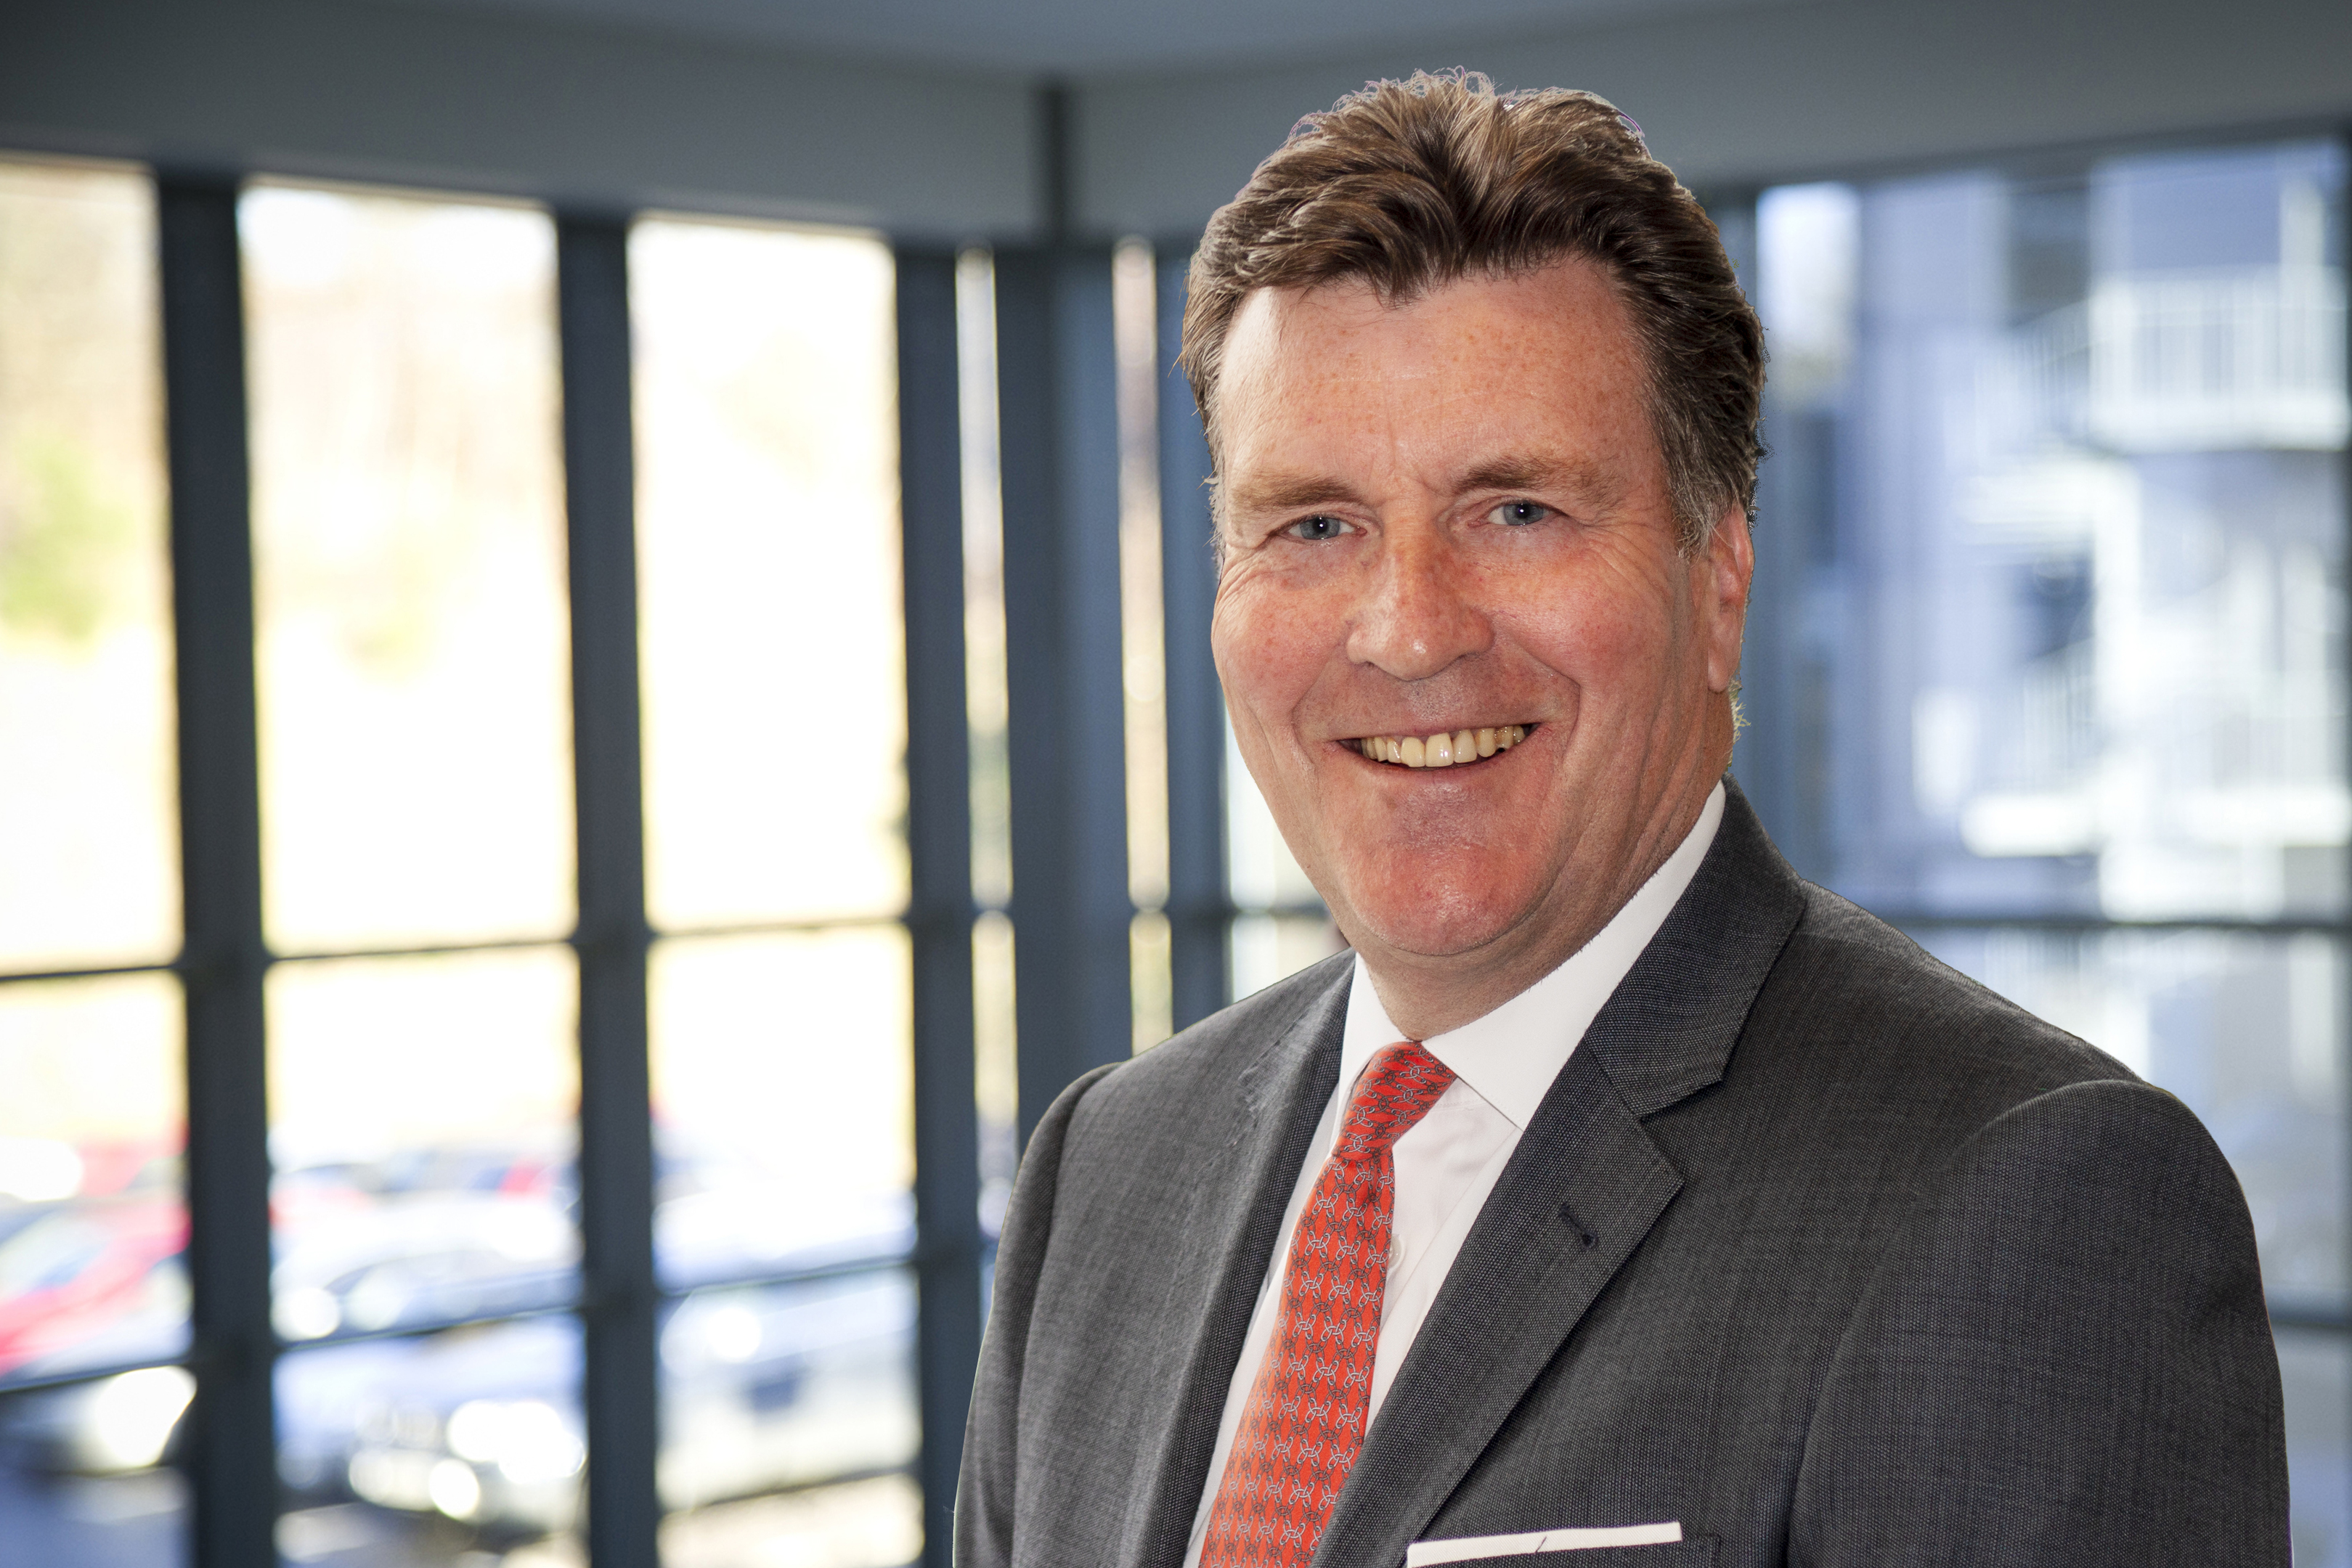 David Currie took over as CEO of Proserv in May